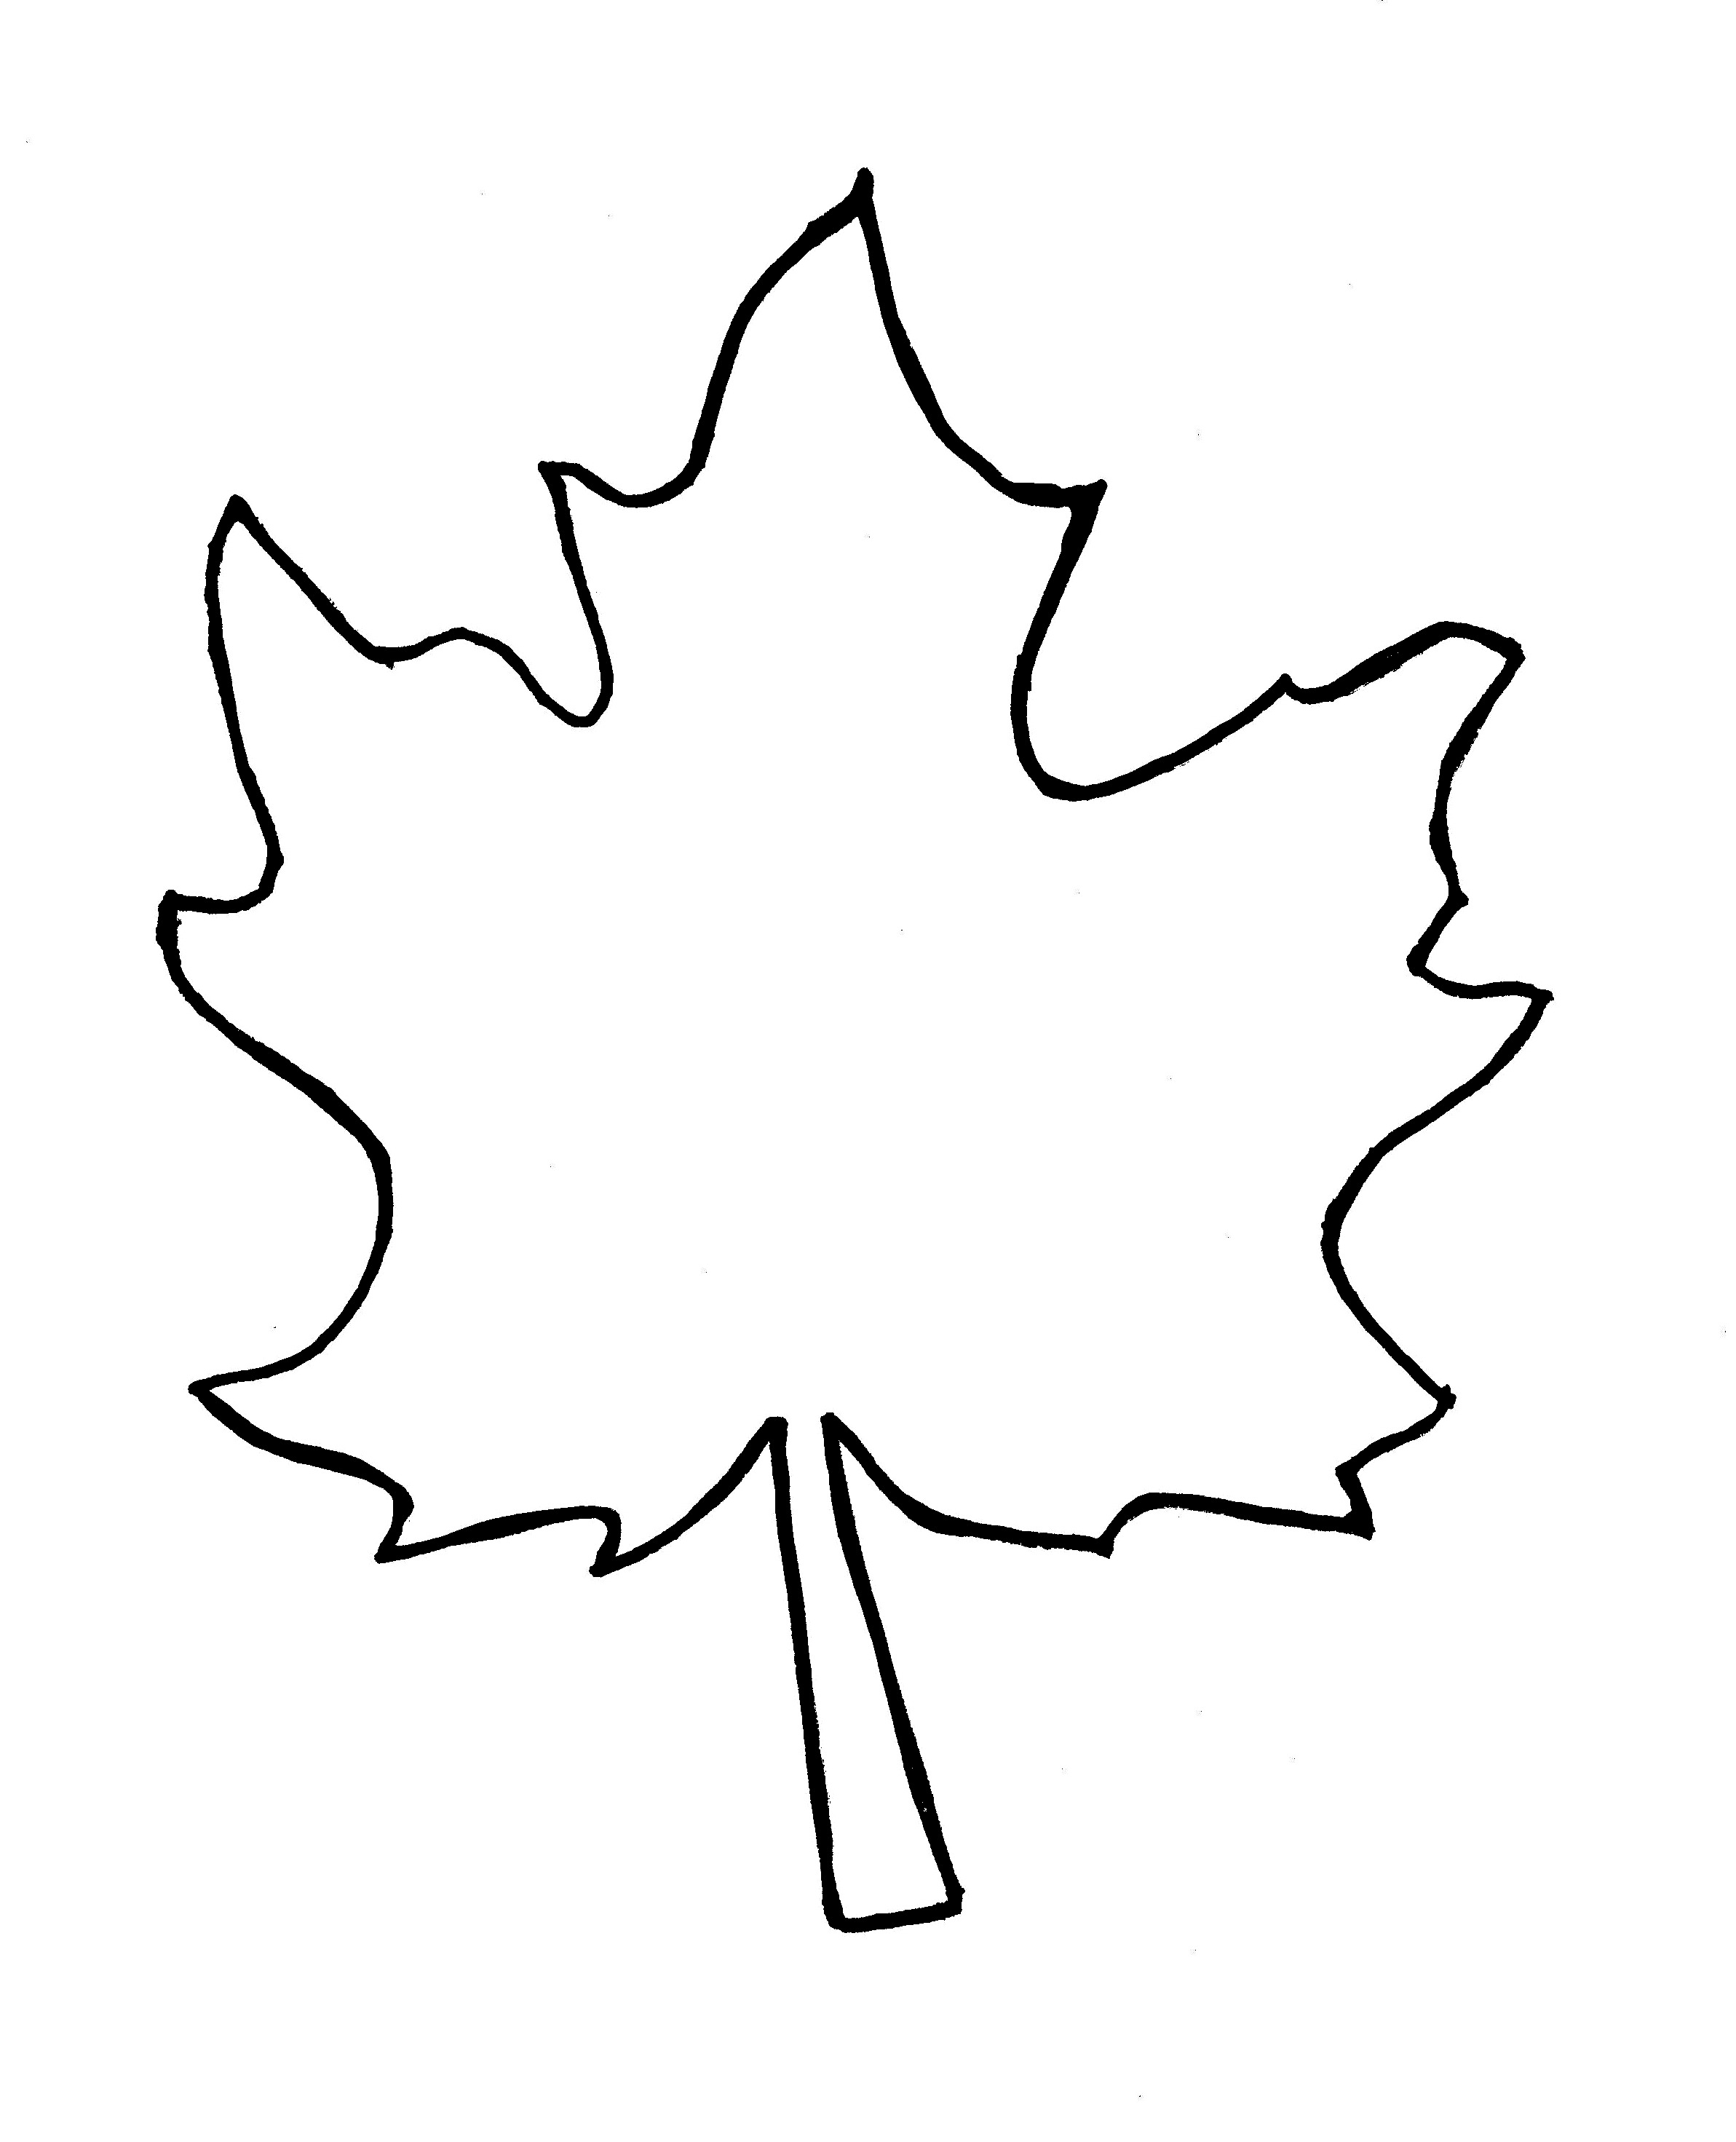 Autumn oak leaf black and white clipart banner royalty free stock Free Autumn Leaf Outline, Download Free Clip Art, Free Clip Art on ... banner royalty free stock